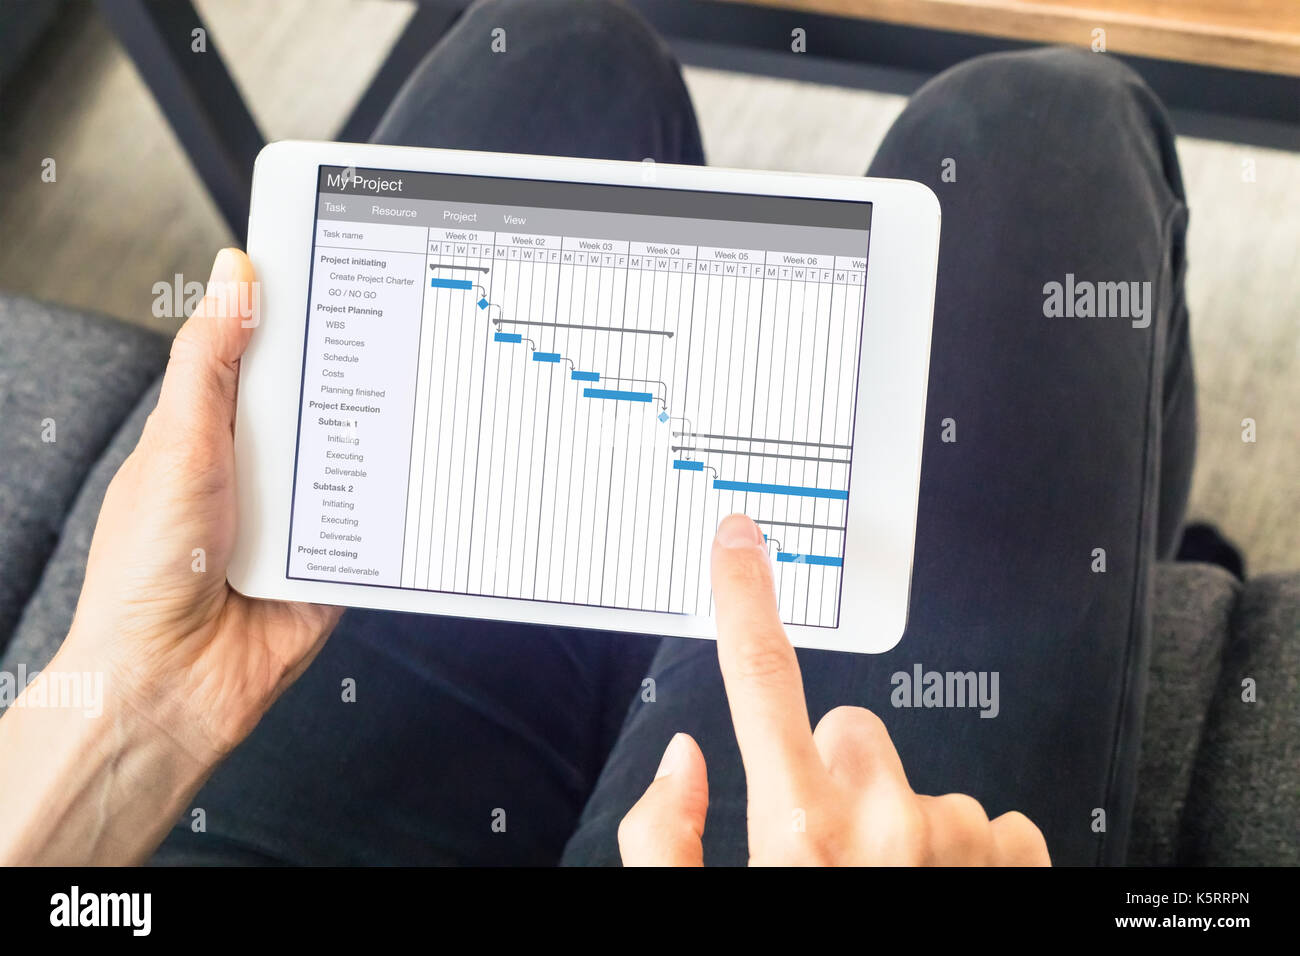 Gantt chart stock photos gantt chart stock images alamy project manager working with gantt chart with planning software on digital tablet computer to update the nvjuhfo Choice Image